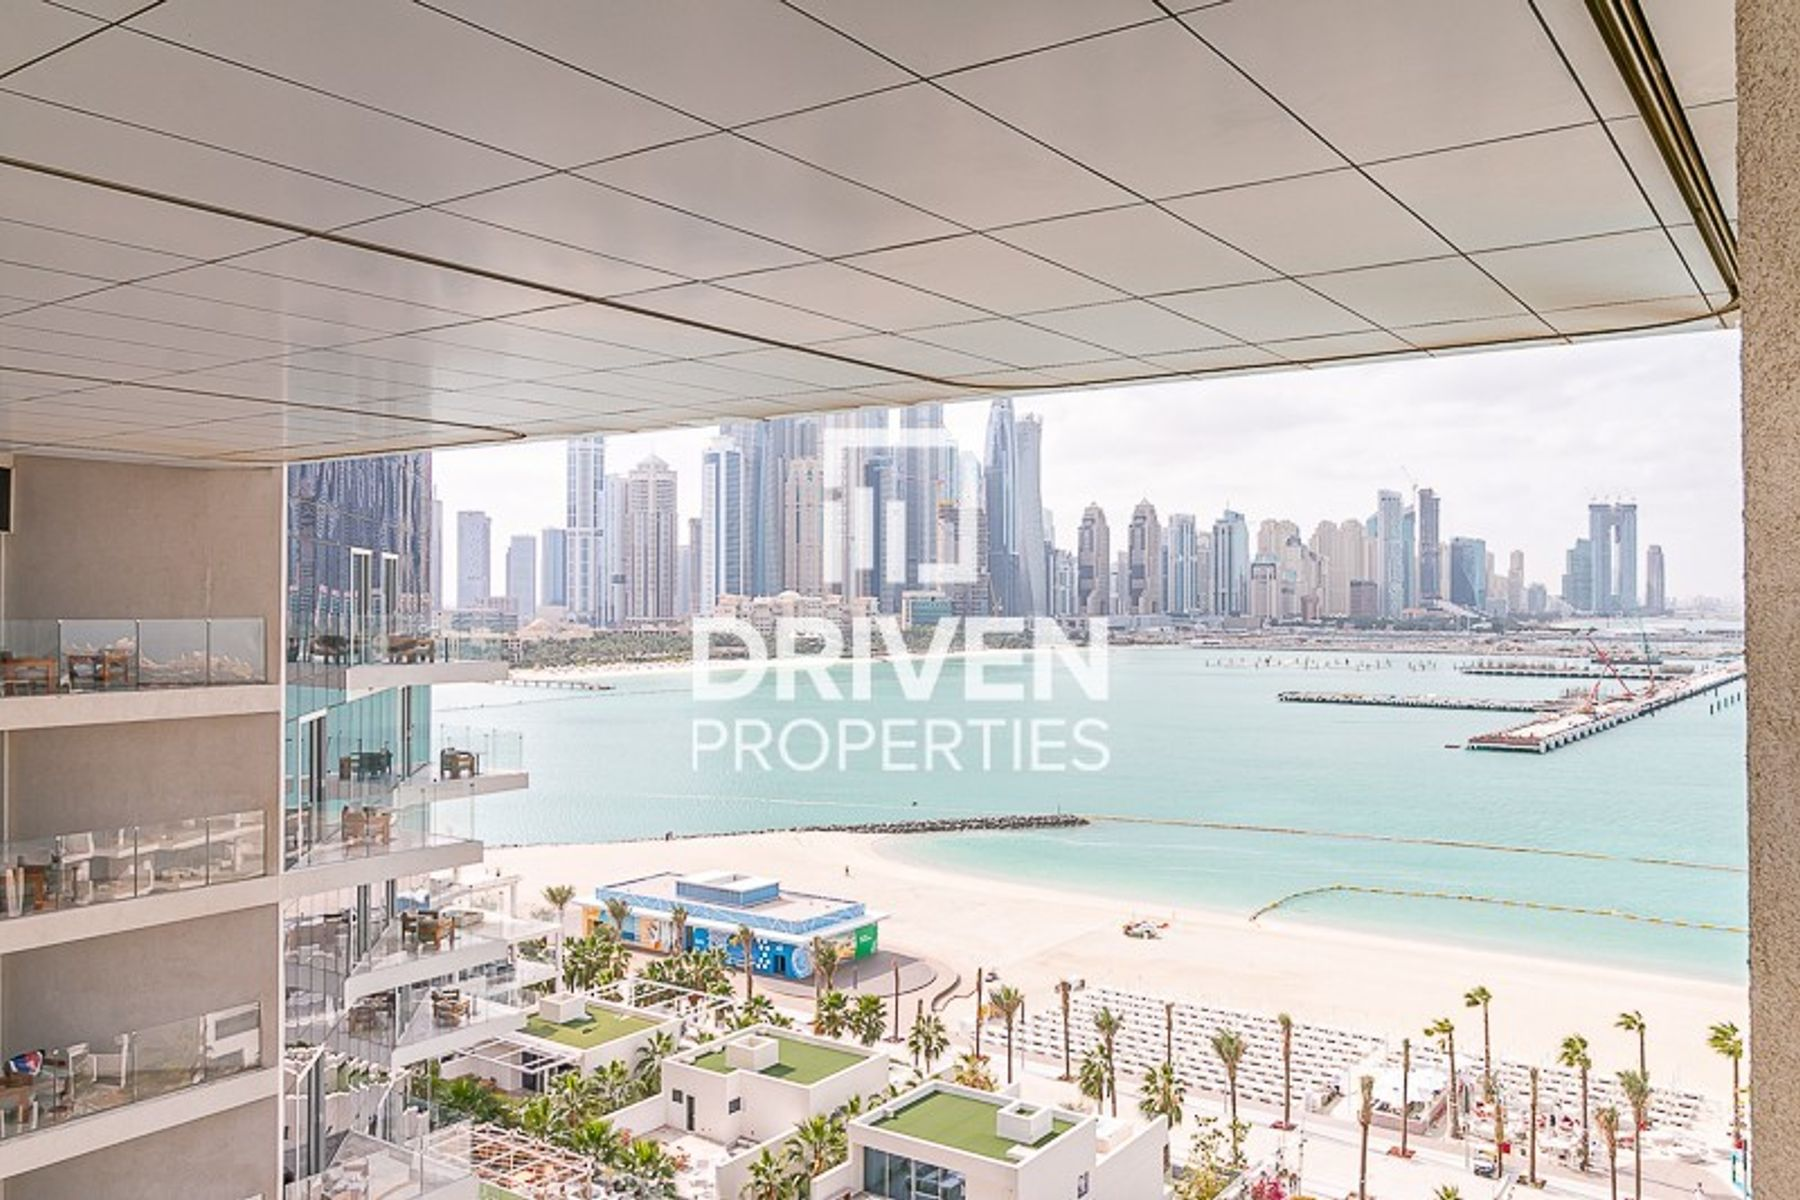 Studio for Sale in FIVE Palm Jumeirah - Palm Jumeirah